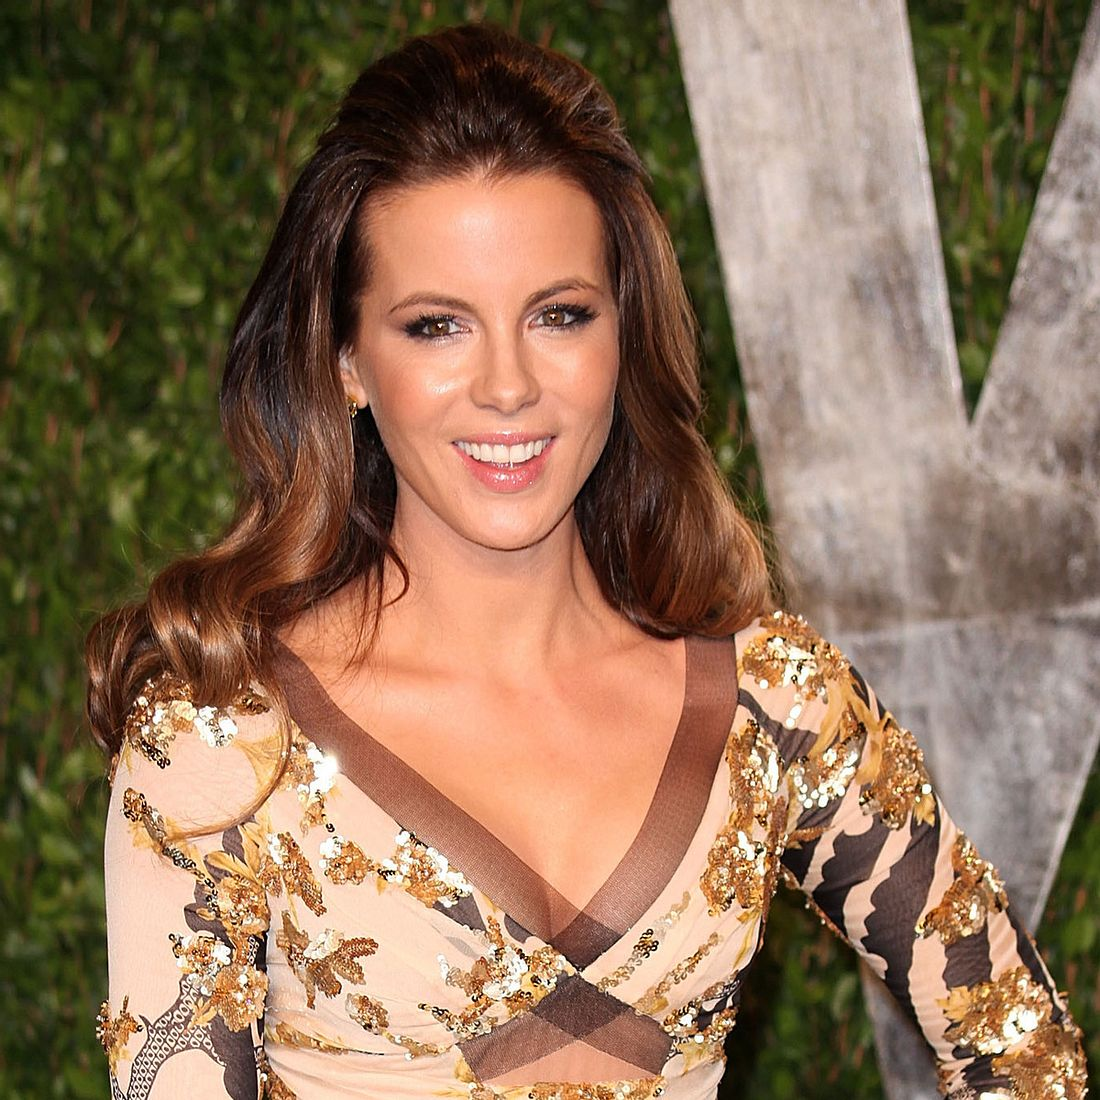 Kate Beckinsale war als Kind ein Bücherwurm